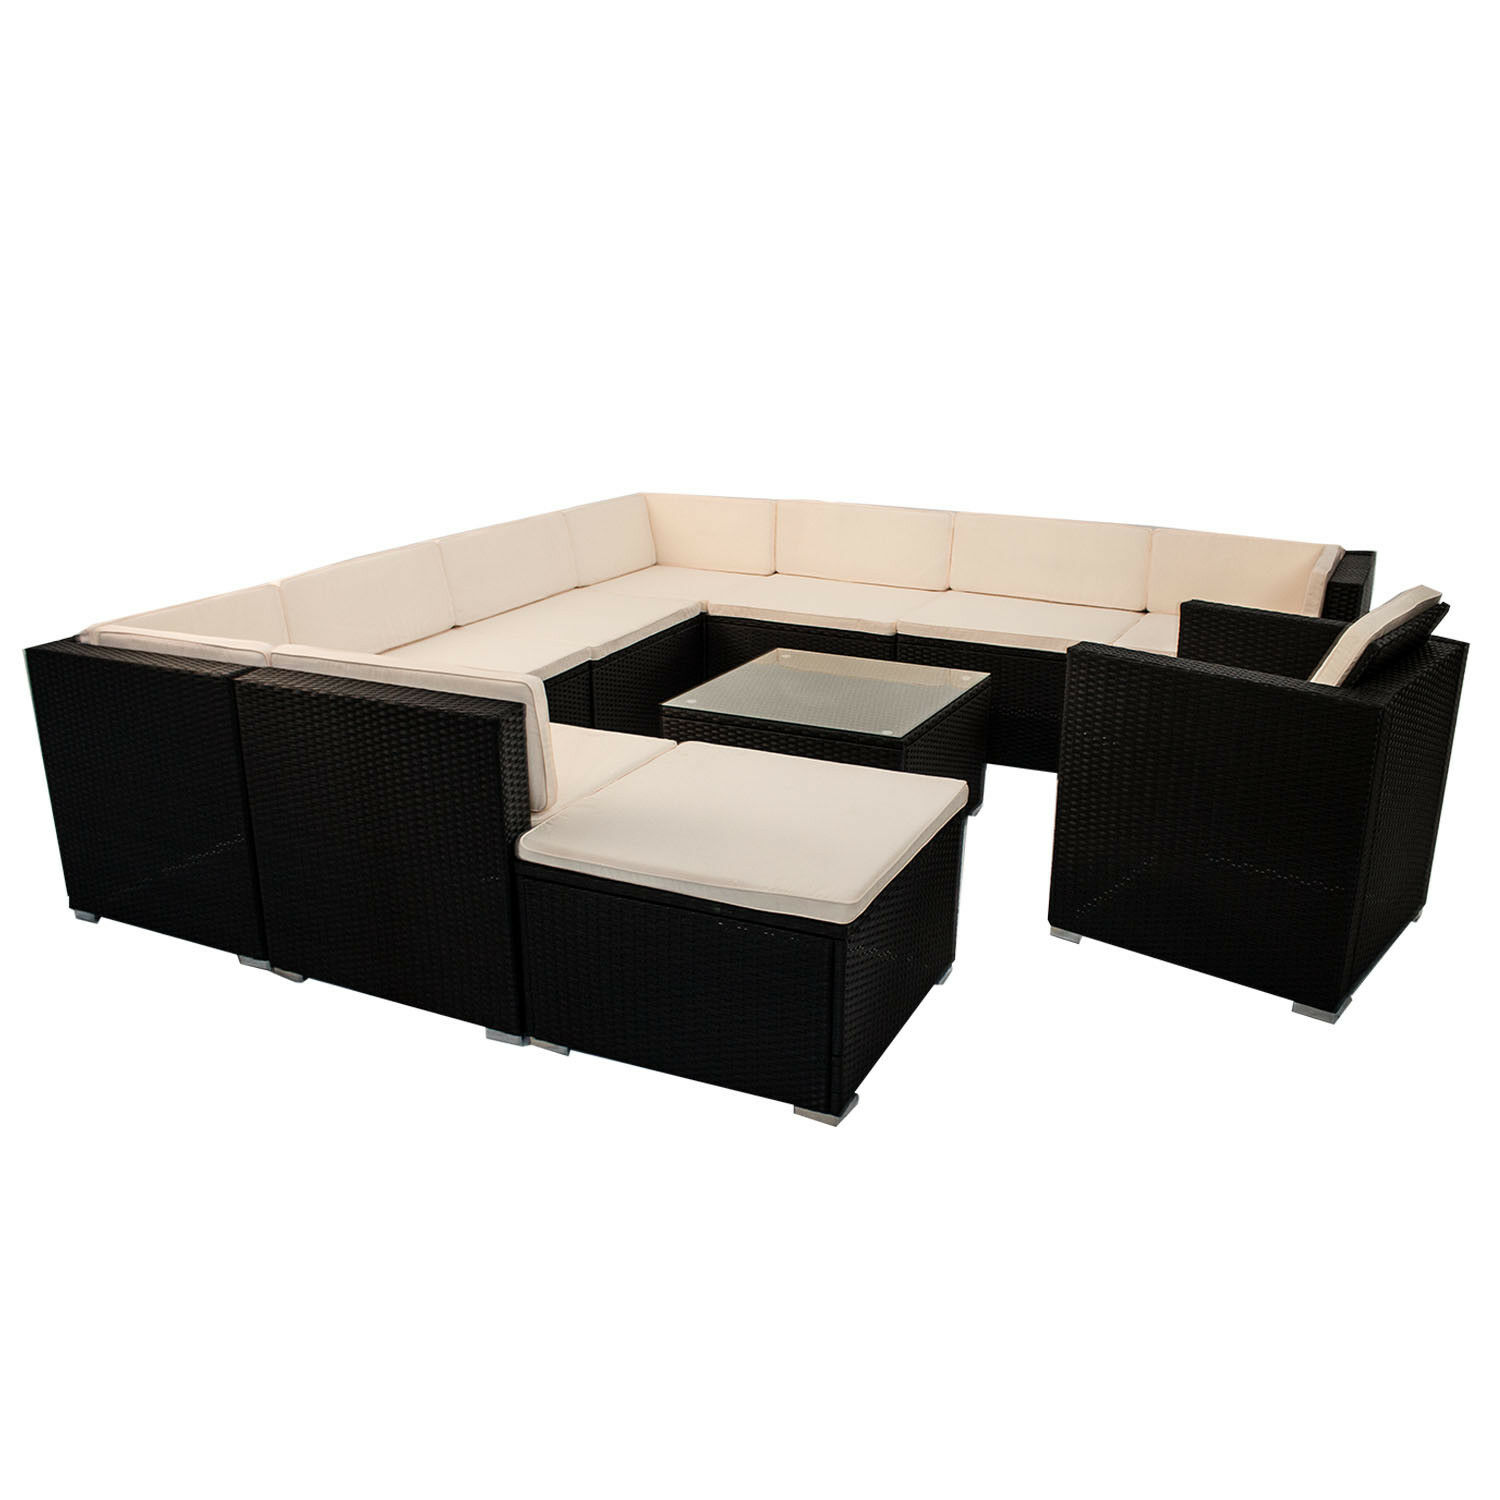 polyrattan gartenm bel lounge rattan gartenset design sitzgruppe rattanm bel top eur 599 95. Black Bedroom Furniture Sets. Home Design Ideas